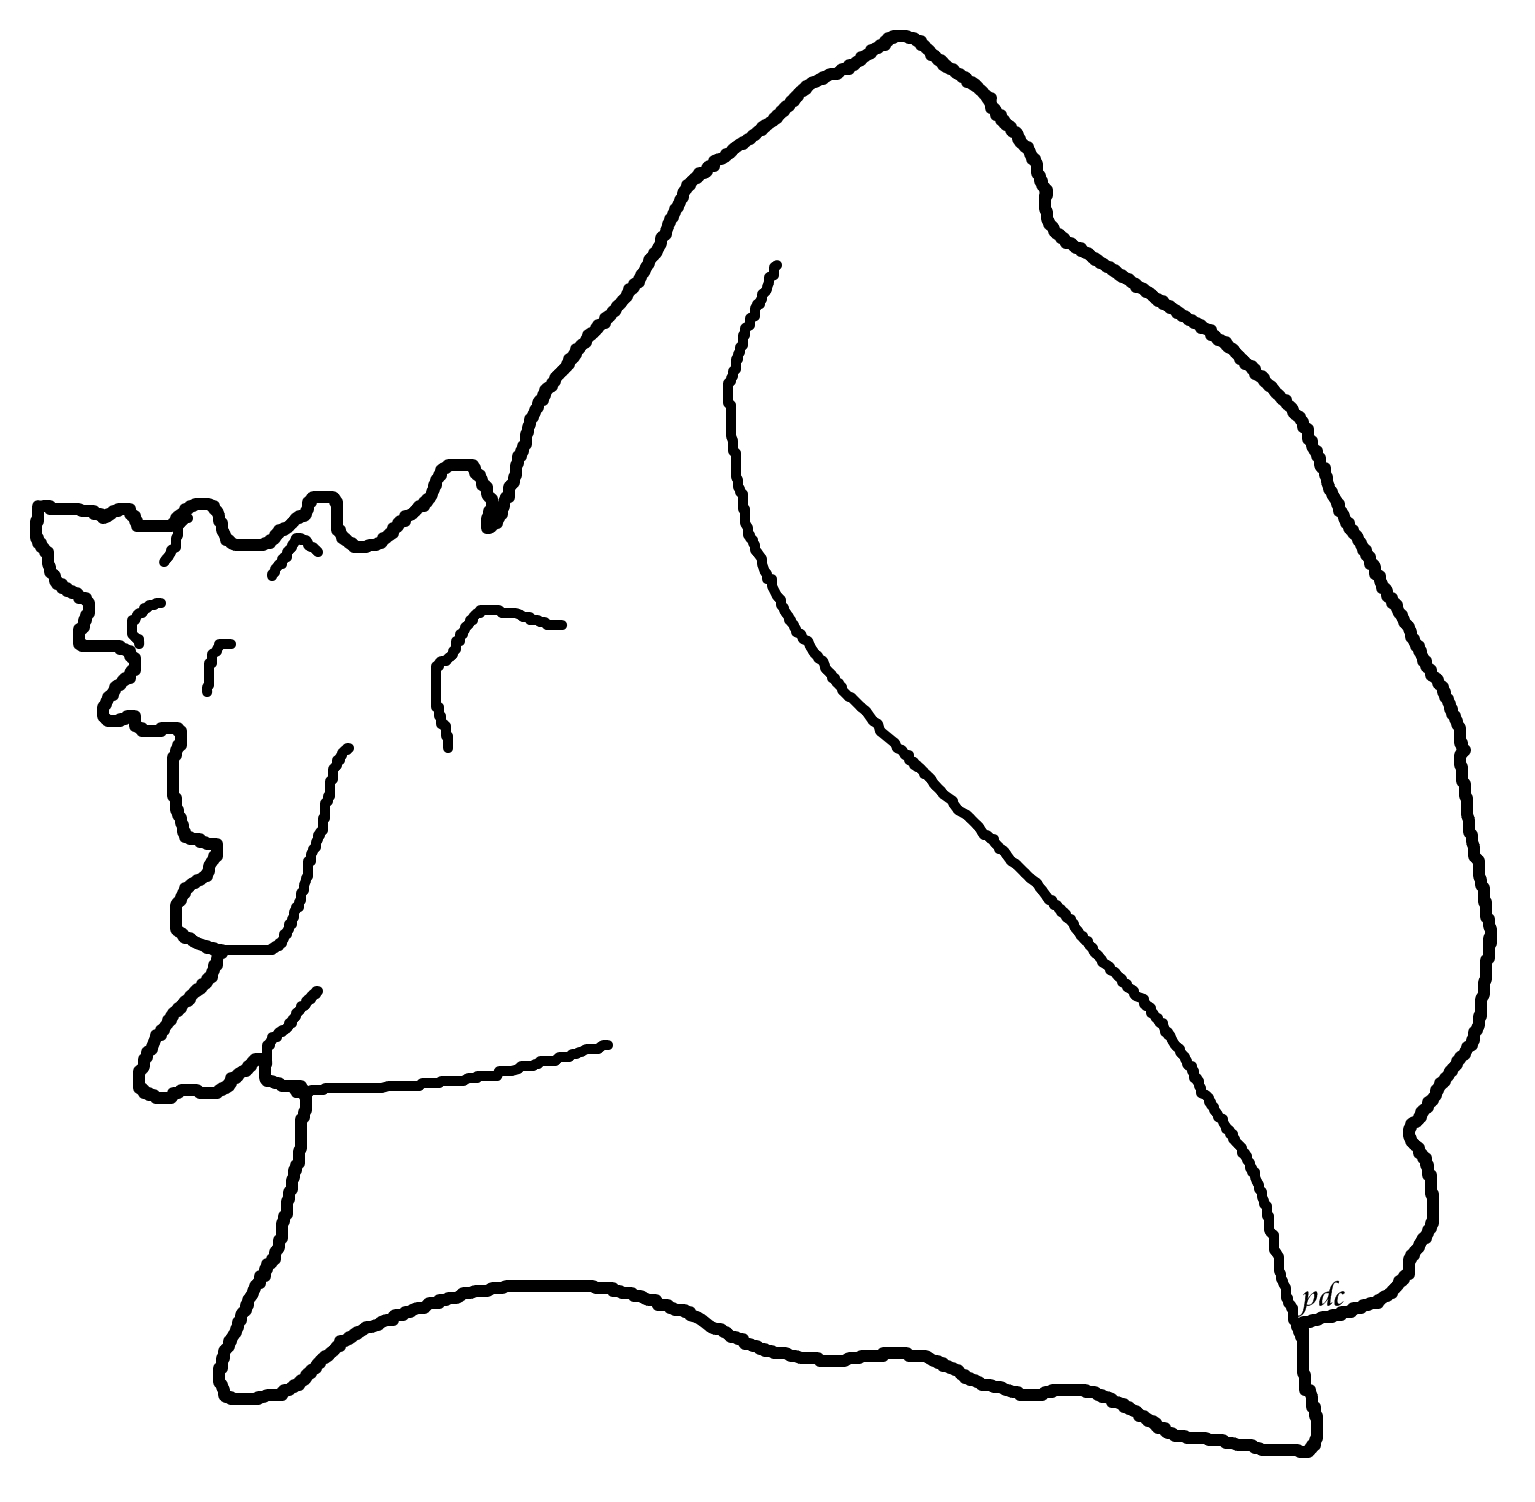 Conch coloring #17, Download drawings